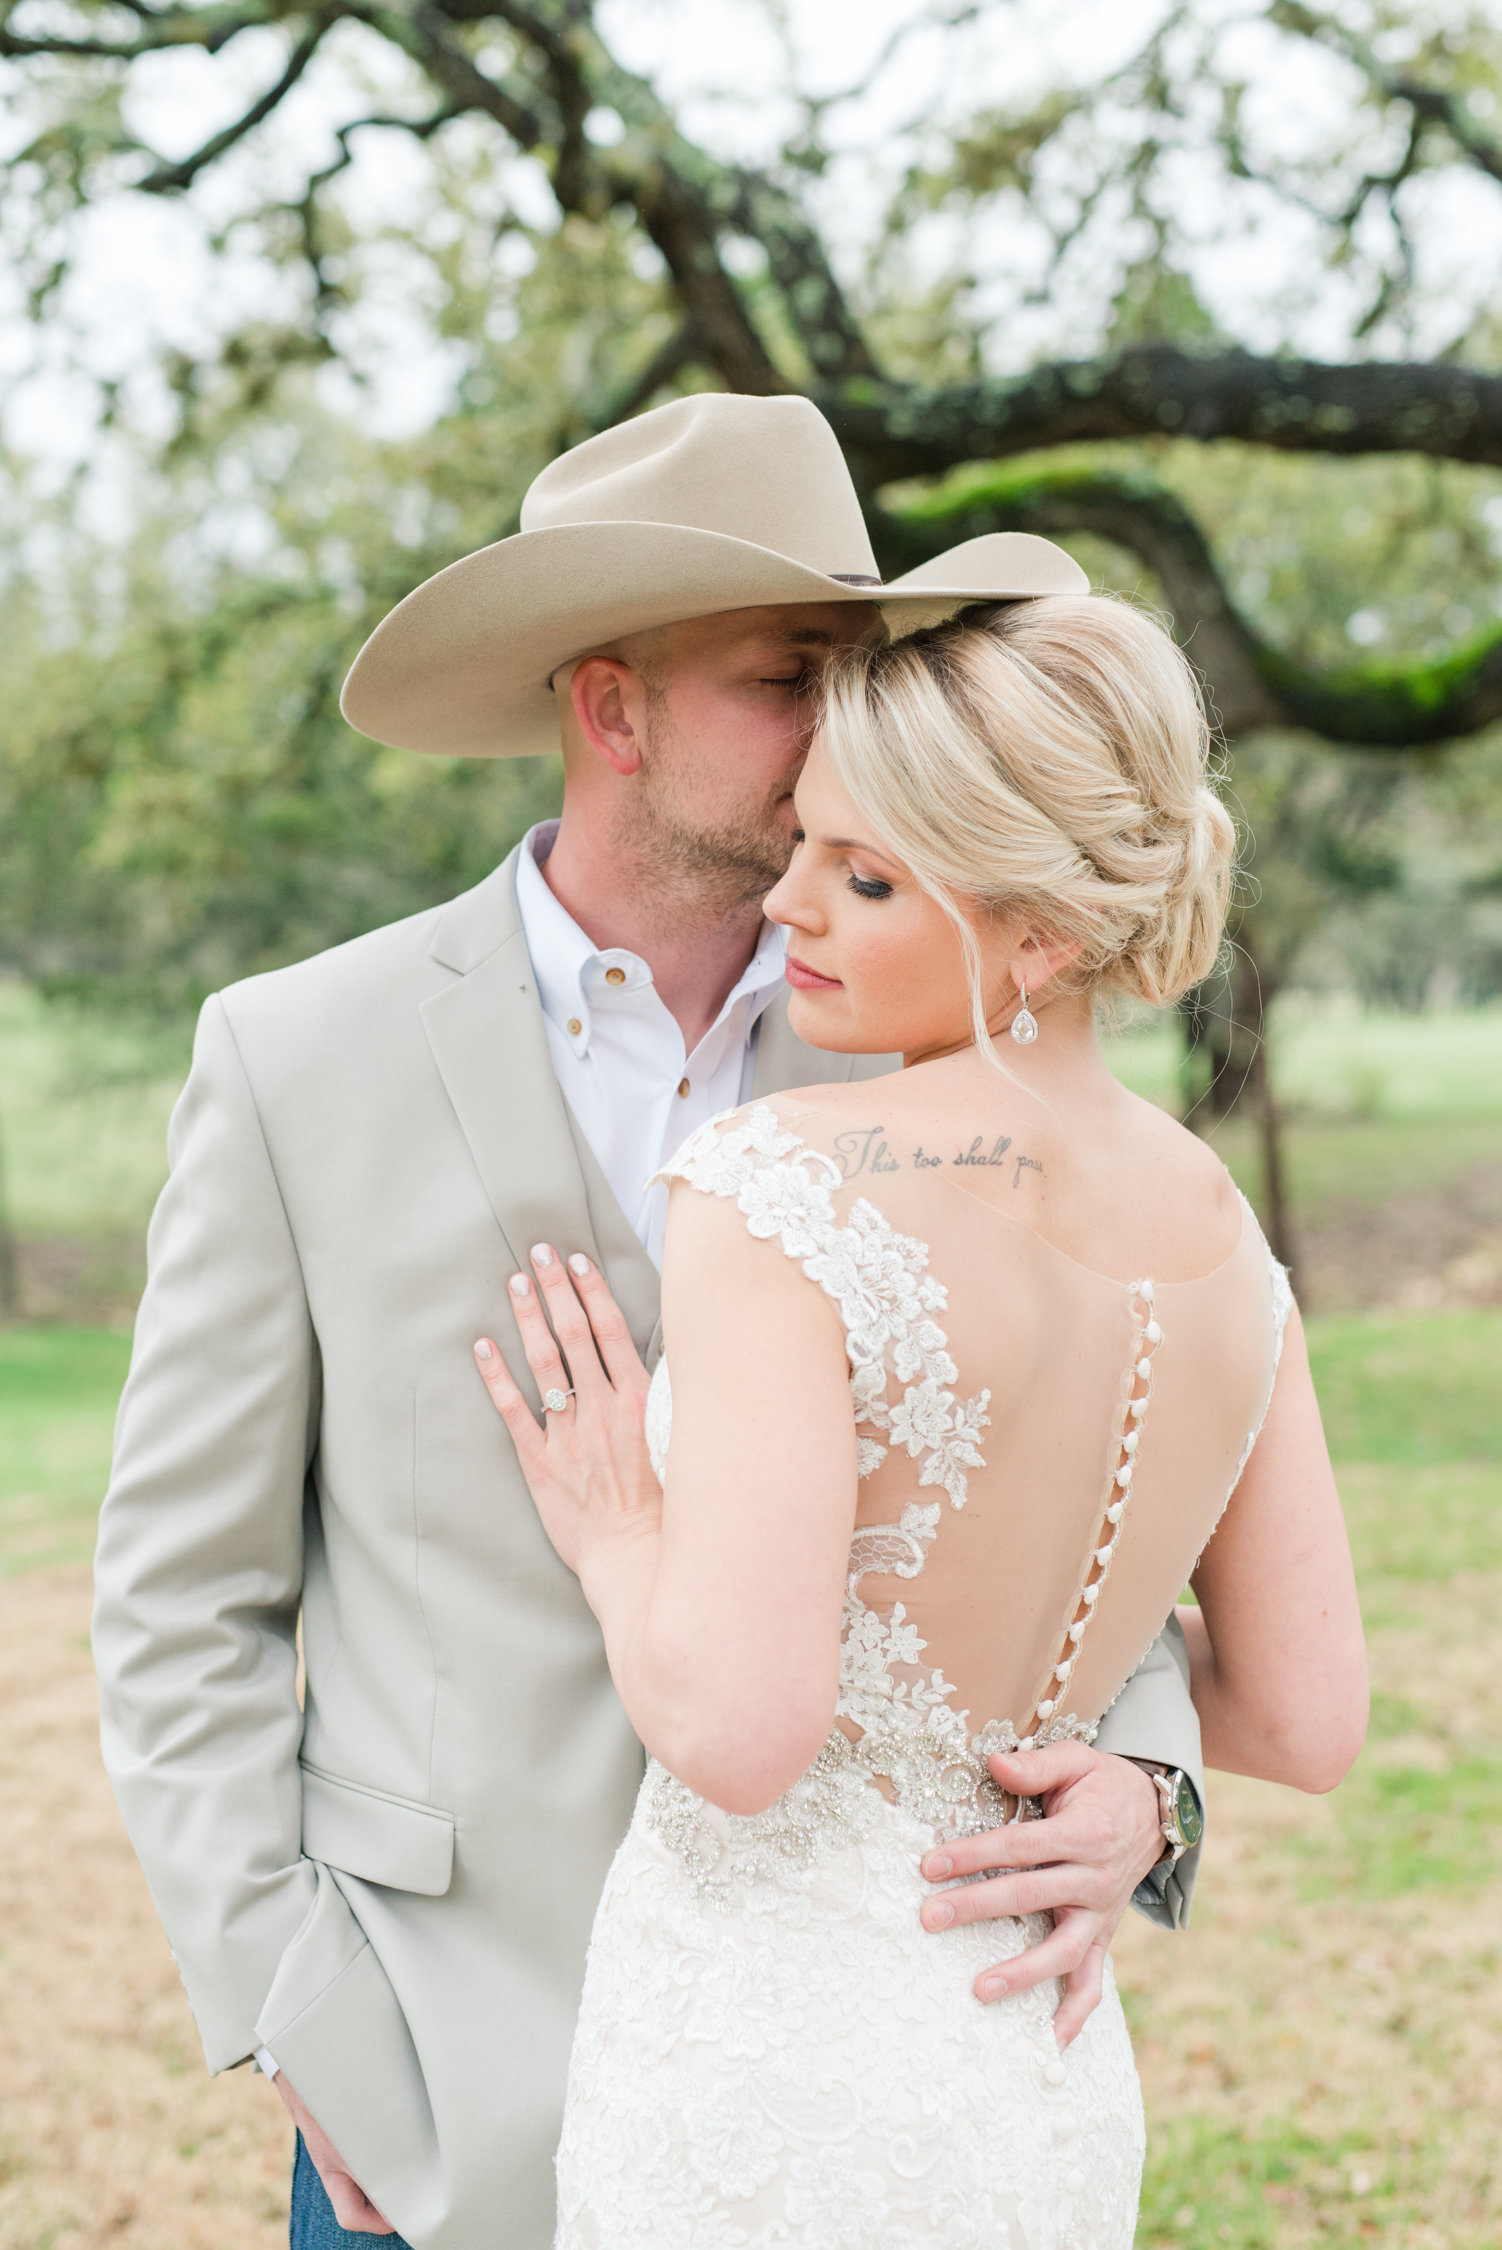 Groom kisses bride on the forehead at their Rustic Ranch Wedding in Wimberley, Texas